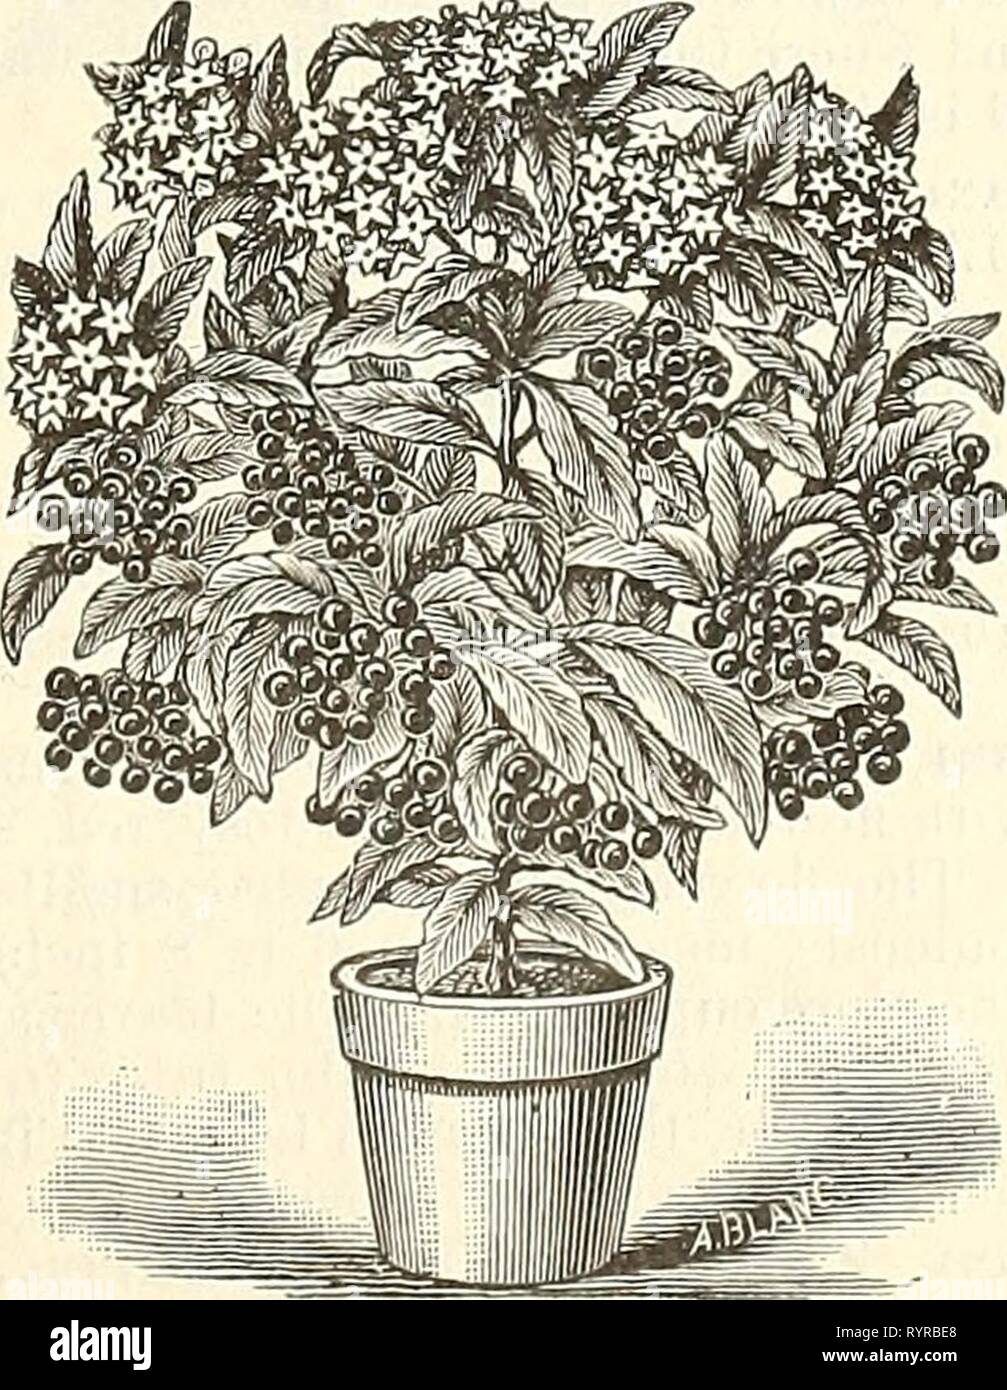 Dreer's mid-summer list  strawberry, Dreer's mid-summer list : strawberry, celery and other seasonable plants, seeds etc. July 1894 August . dreersmidsummerl1894henr Year: 1894  Alocasia Macrorhiza Variegata. A strictly handsome ornamental leaved plant, foliage nearly as large as Caladium Esculentum, light green, broadly splashed with white. Its easy growth, combined with rich variegation, makes this one of the most valuable decorative plants. 50 cts to $1.00 each. Ardisia Crenulata. A very ornamental greenhouse plant, with dark evergreen foliage, producing clusters of brilliant red berries ;  - Stock Image